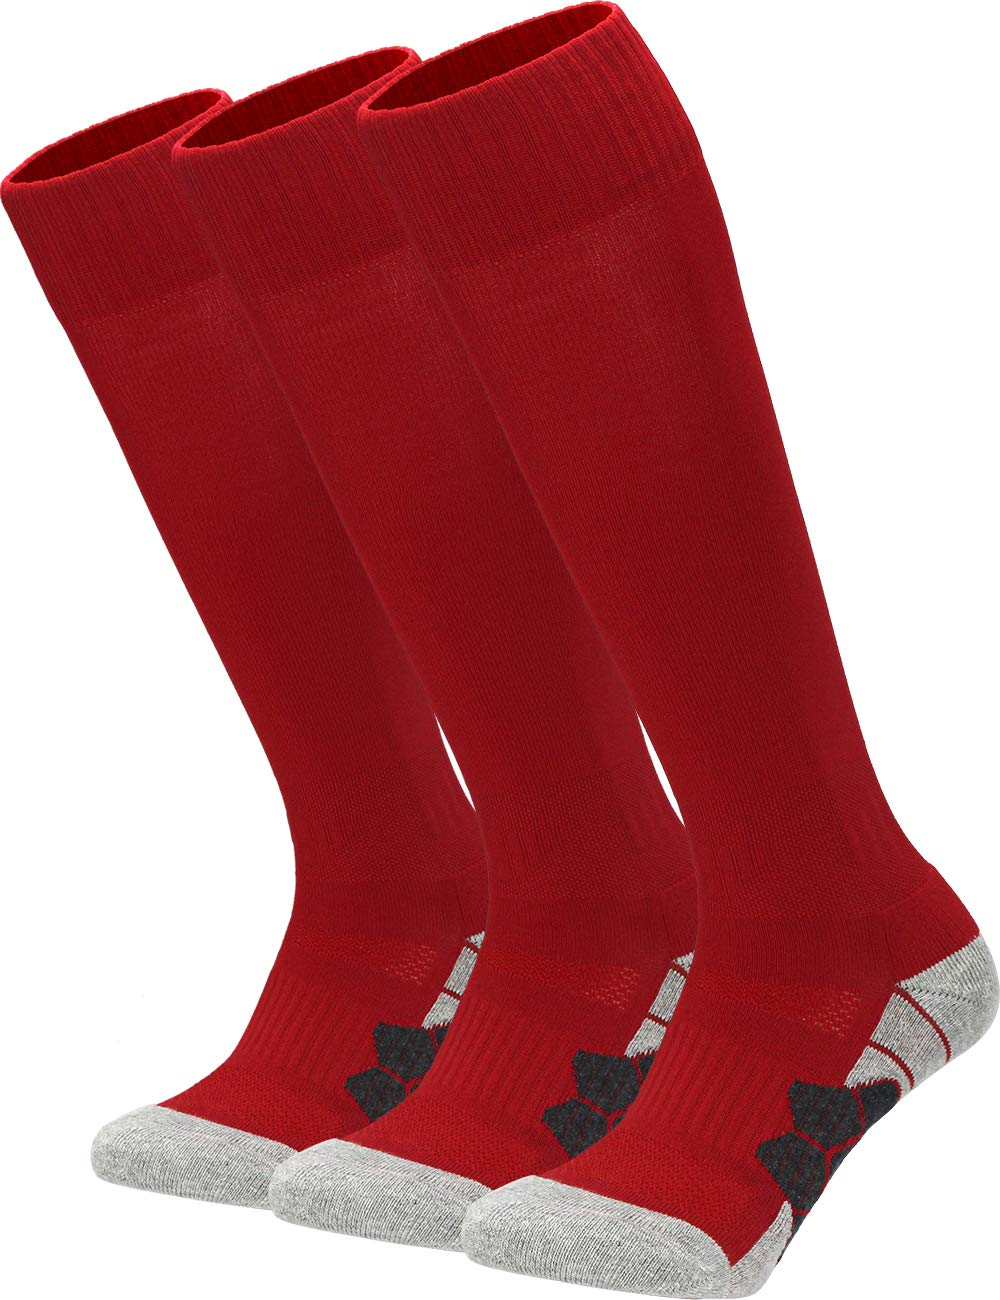 Youth Kids Adult Knee High Cotton Athletic Socks Boys Girls Parent-Child Outdoor Active Long Towel Bottom Socks, 3-Pair Red, Size S (Kids 3C-7C / Youth 3Y-5Y / W 4-6) by APTESOL